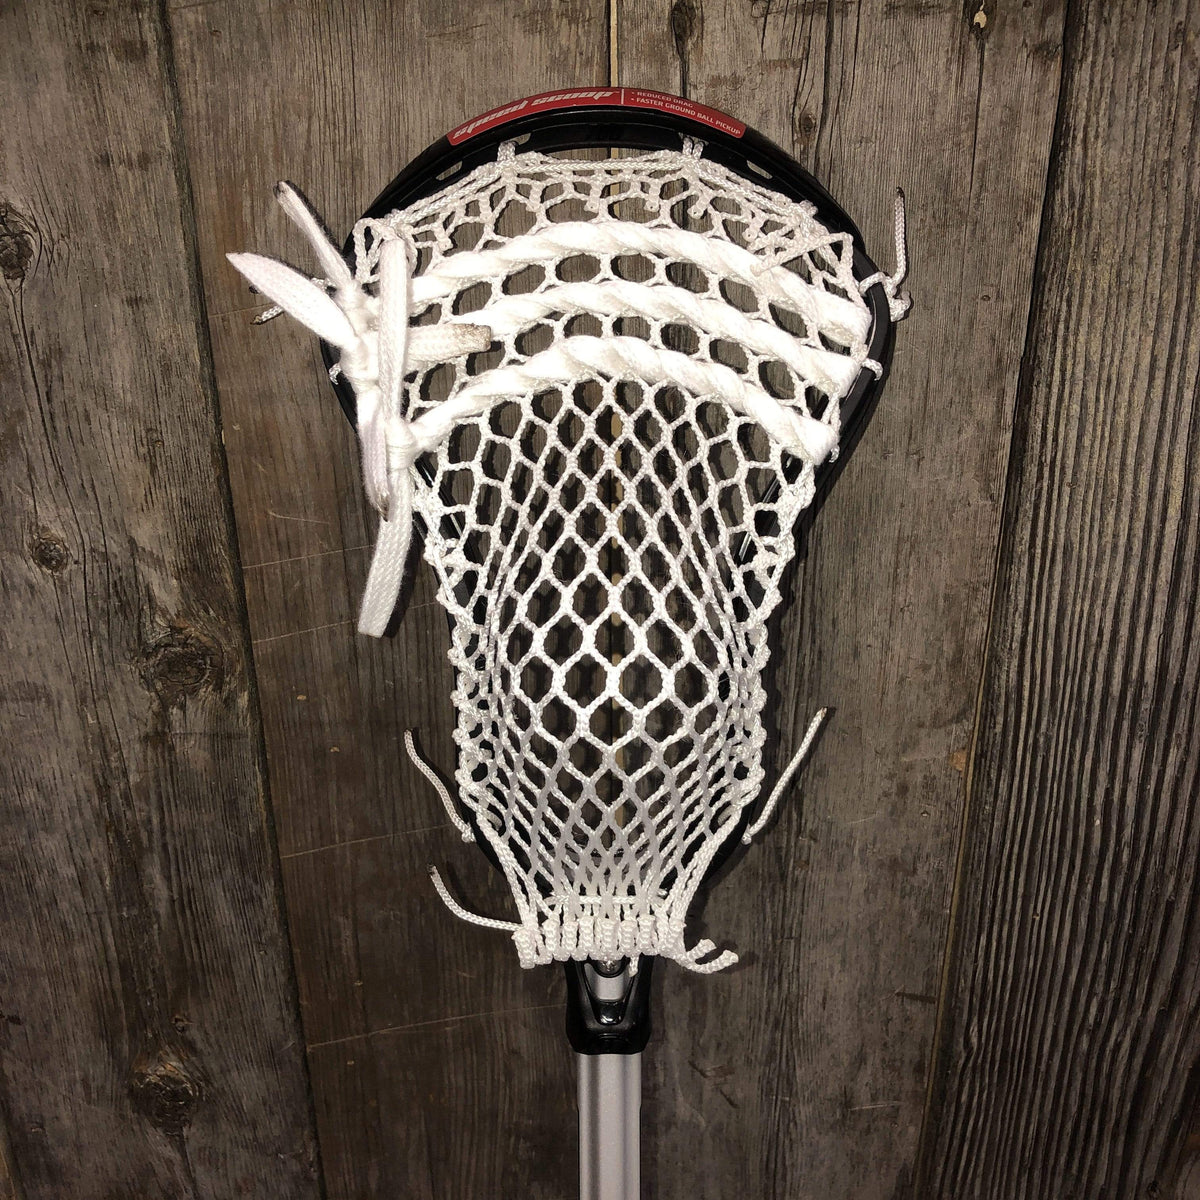 Custom Complete Lacrosse Stick STX Shift Sc-Ti with a Custom Strung STX Stallion 700 Head